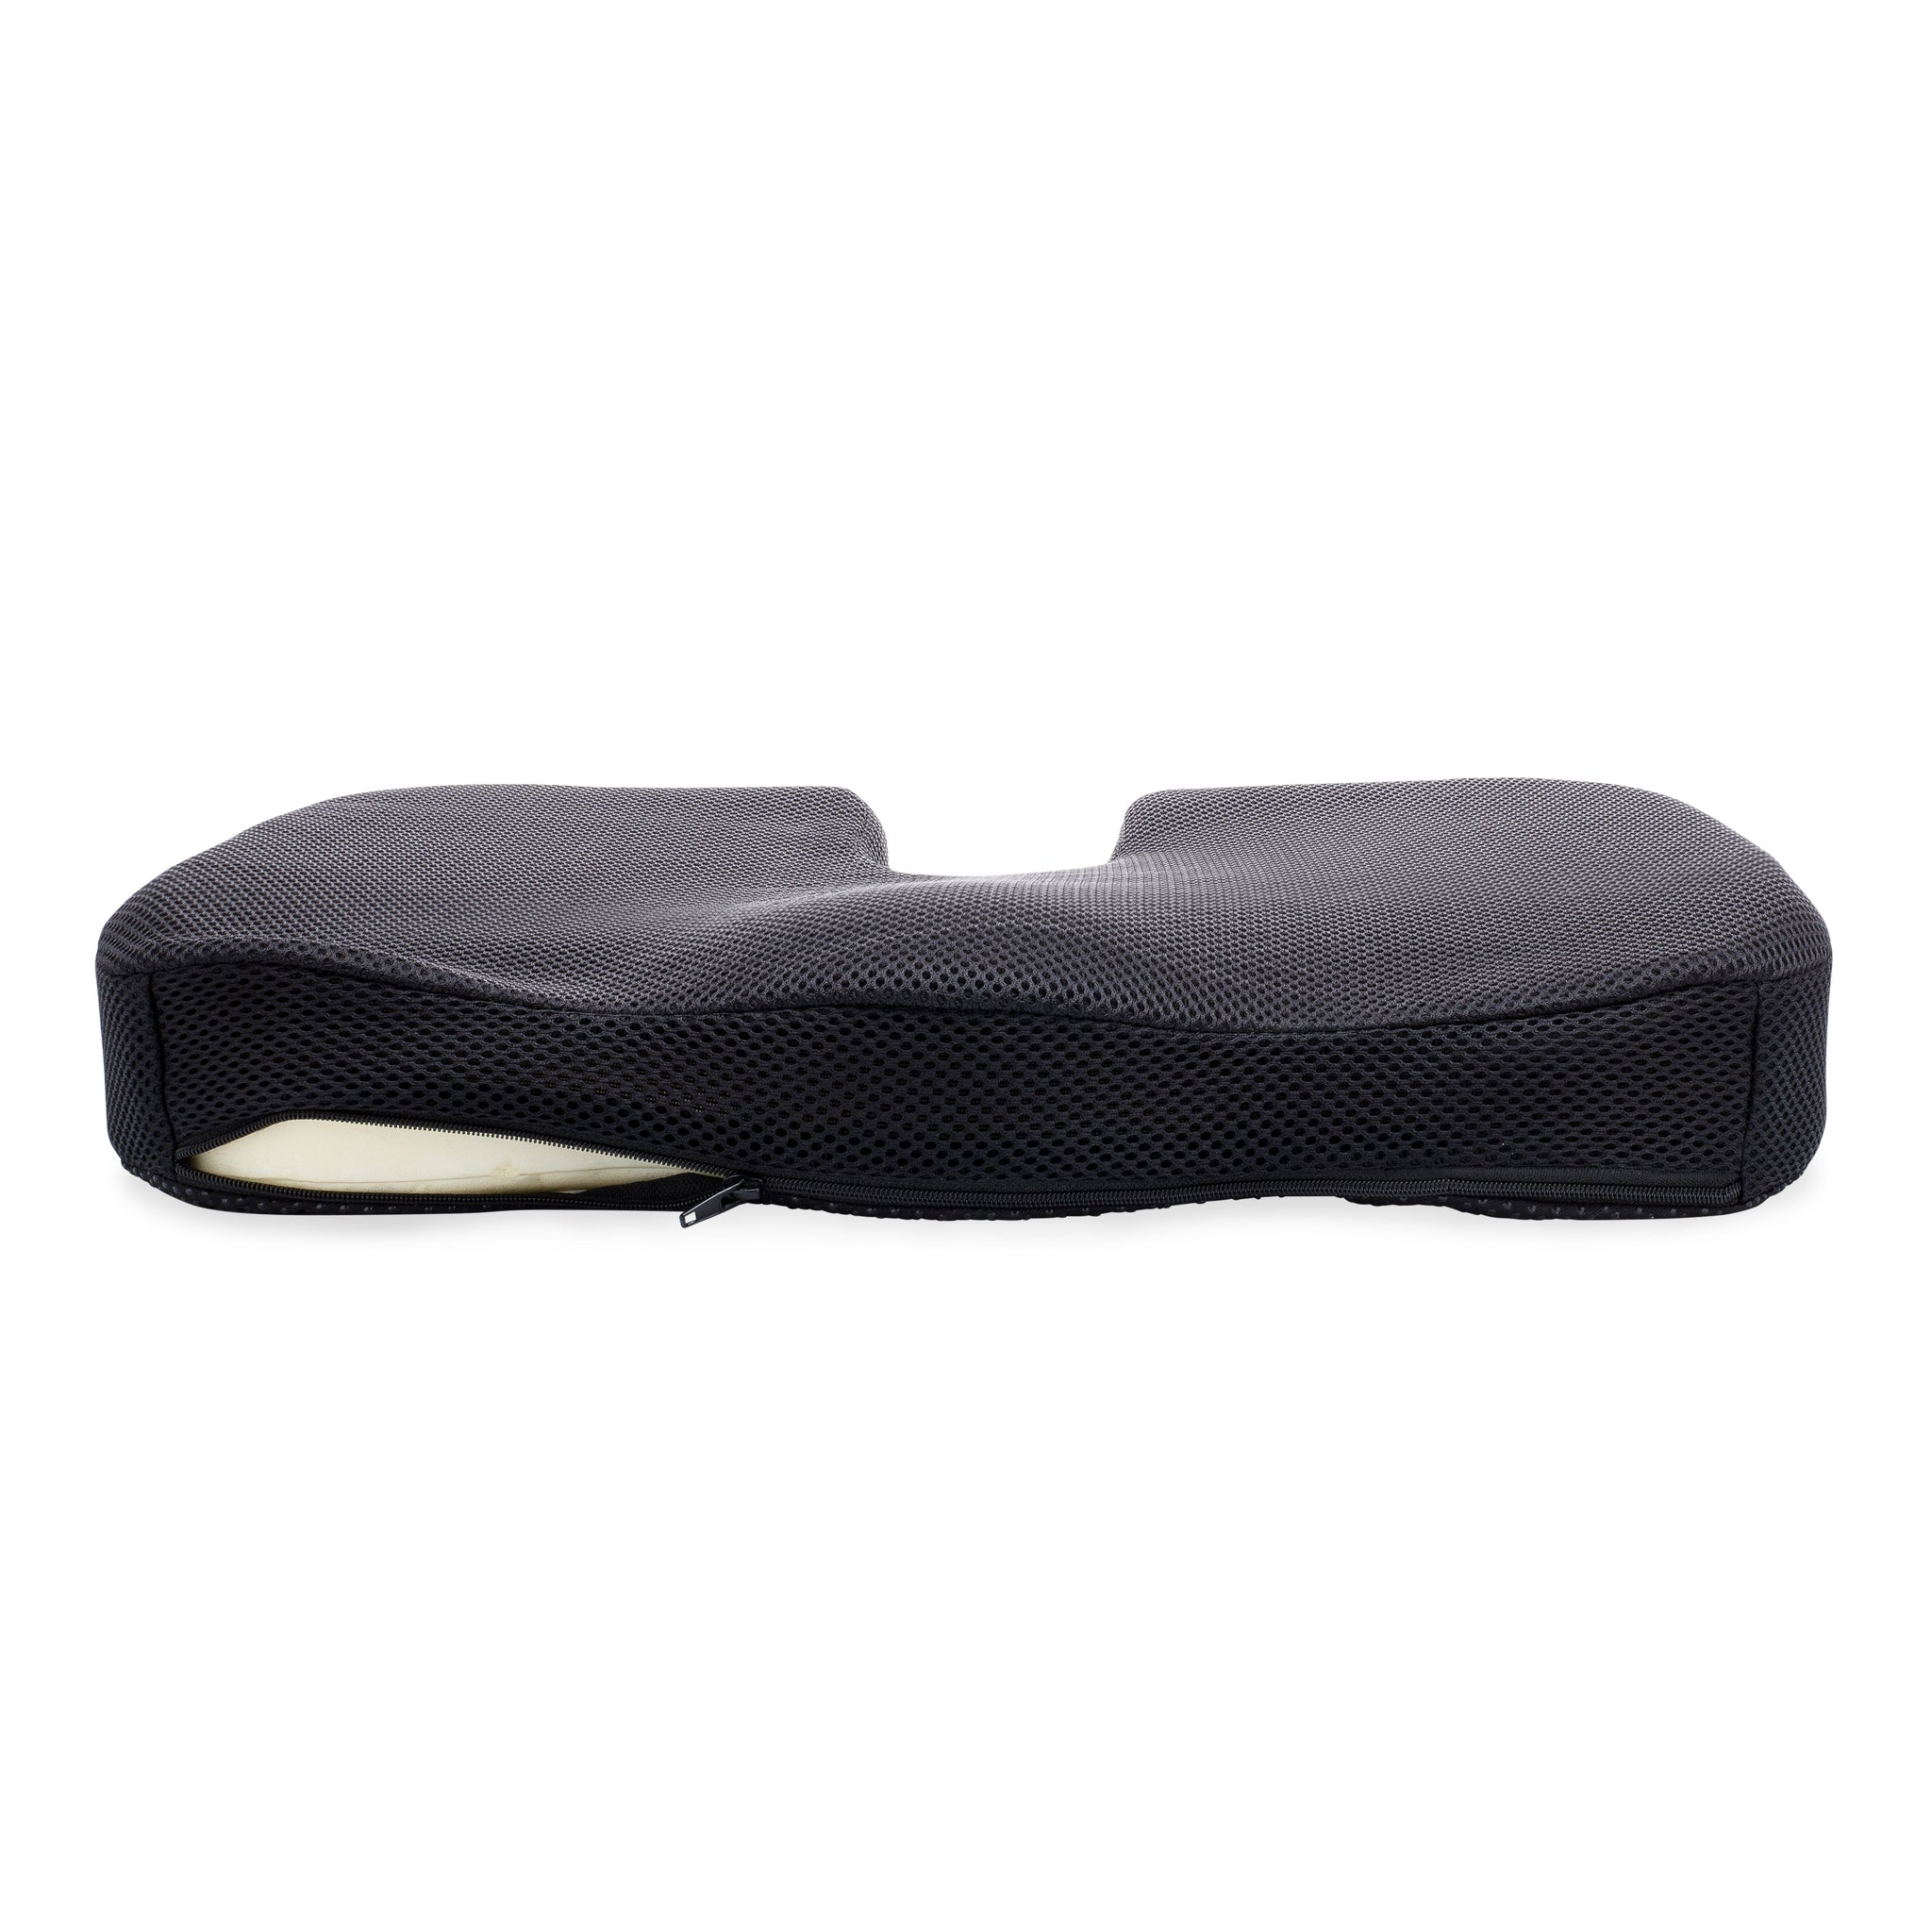 pillow img sciatica donut coccyx cushion dr tailbone ergo for